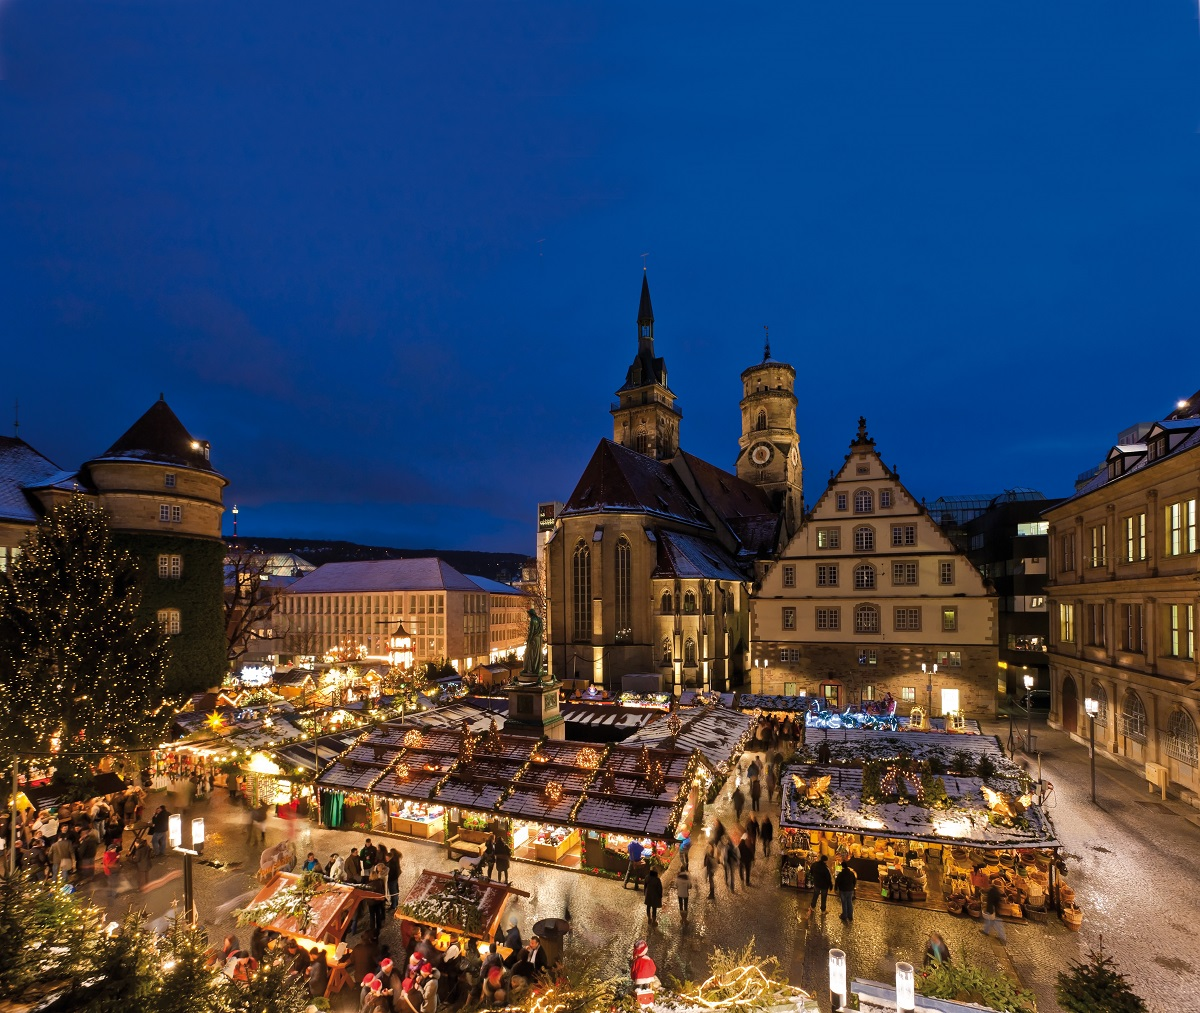 Outdoor Esslingen Christmas Markets In The Stuttgart Region - Travel, Events